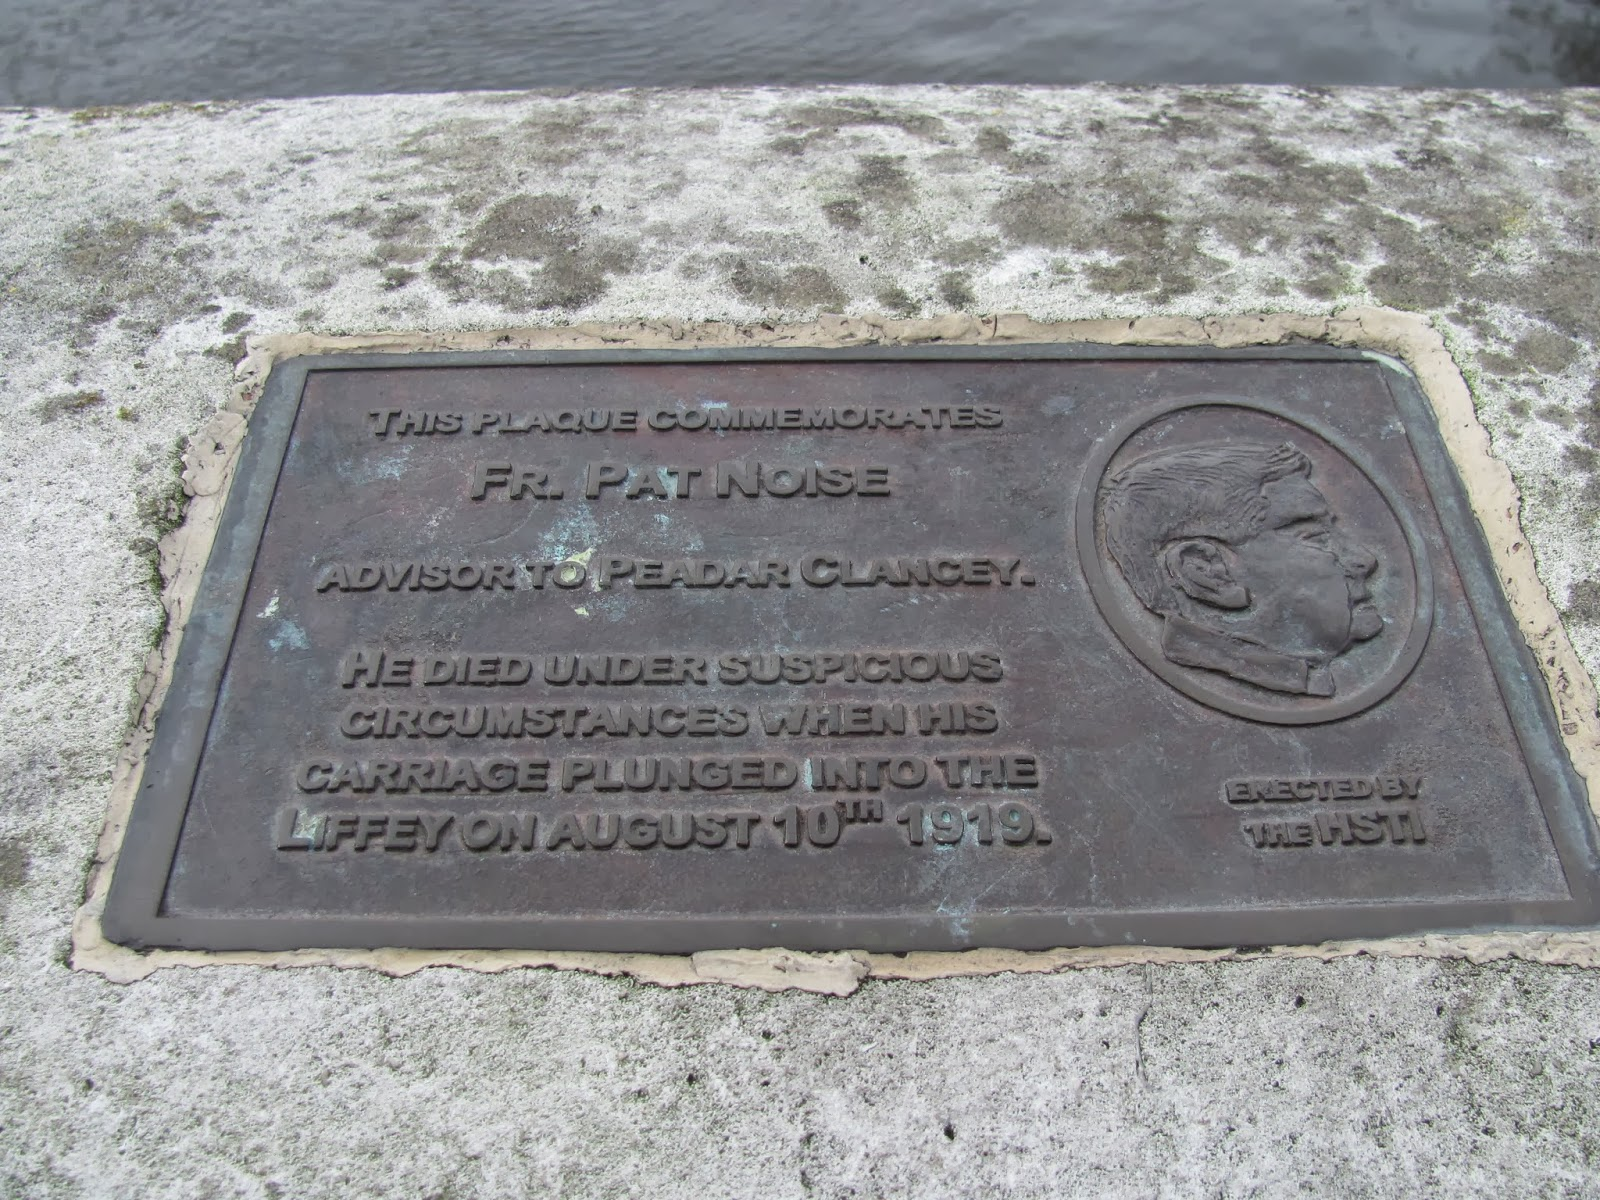 Plaque on O'Connell Bridge to Father Pat Noise Dublin